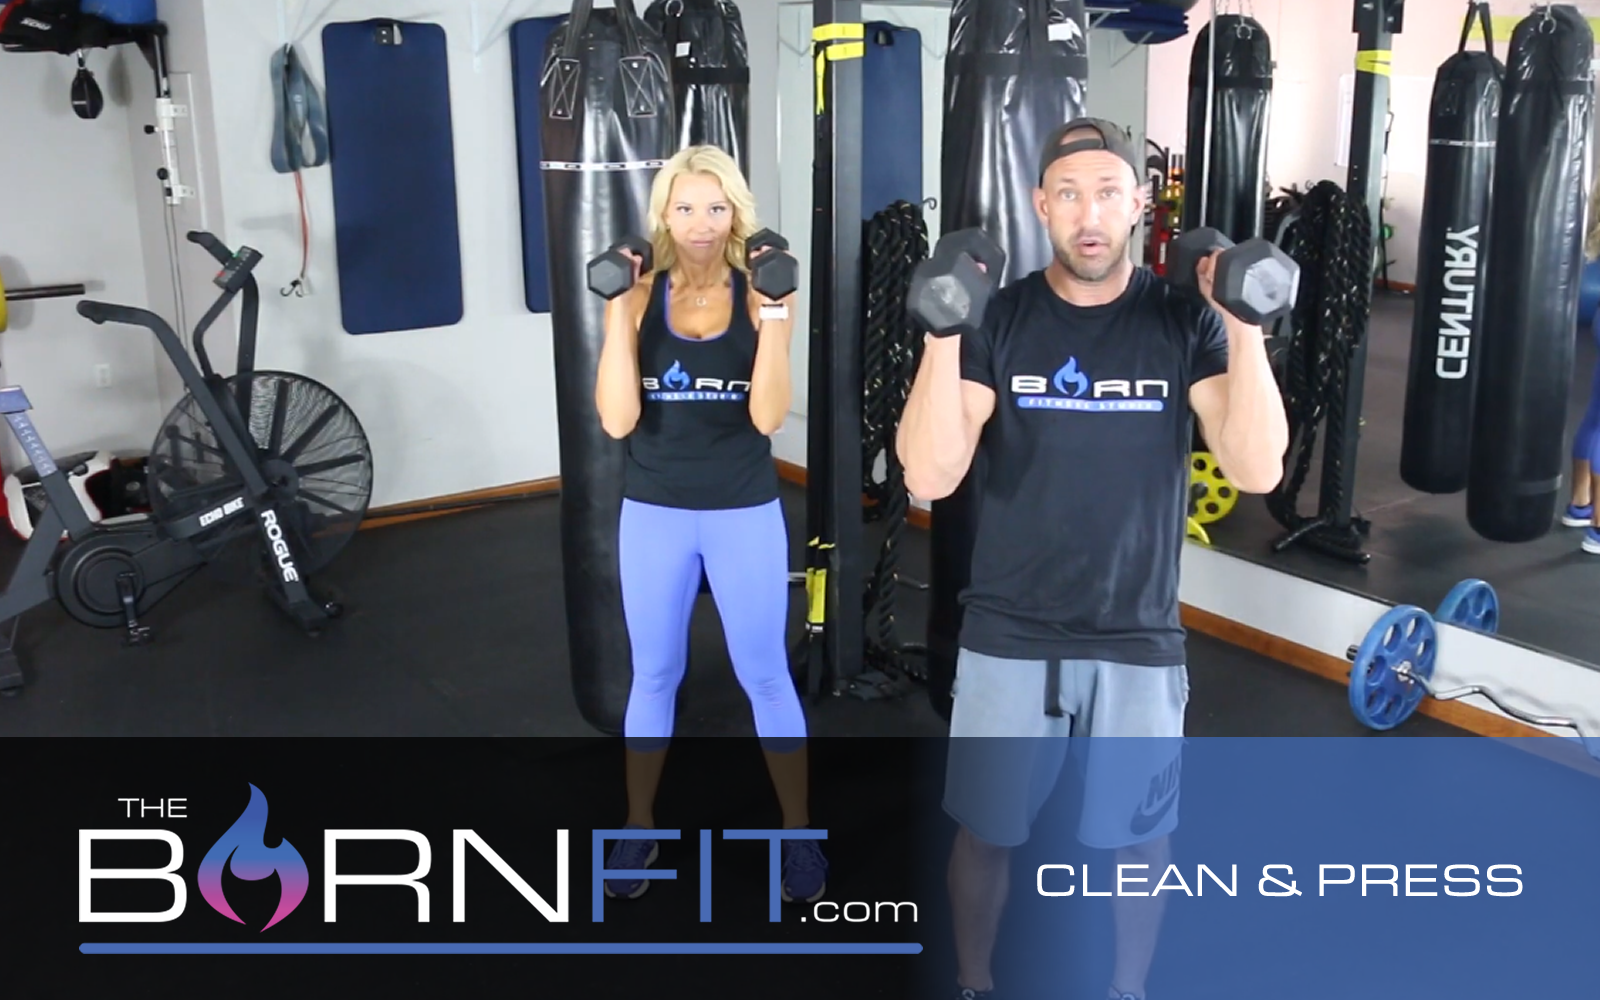 Clean and press workout